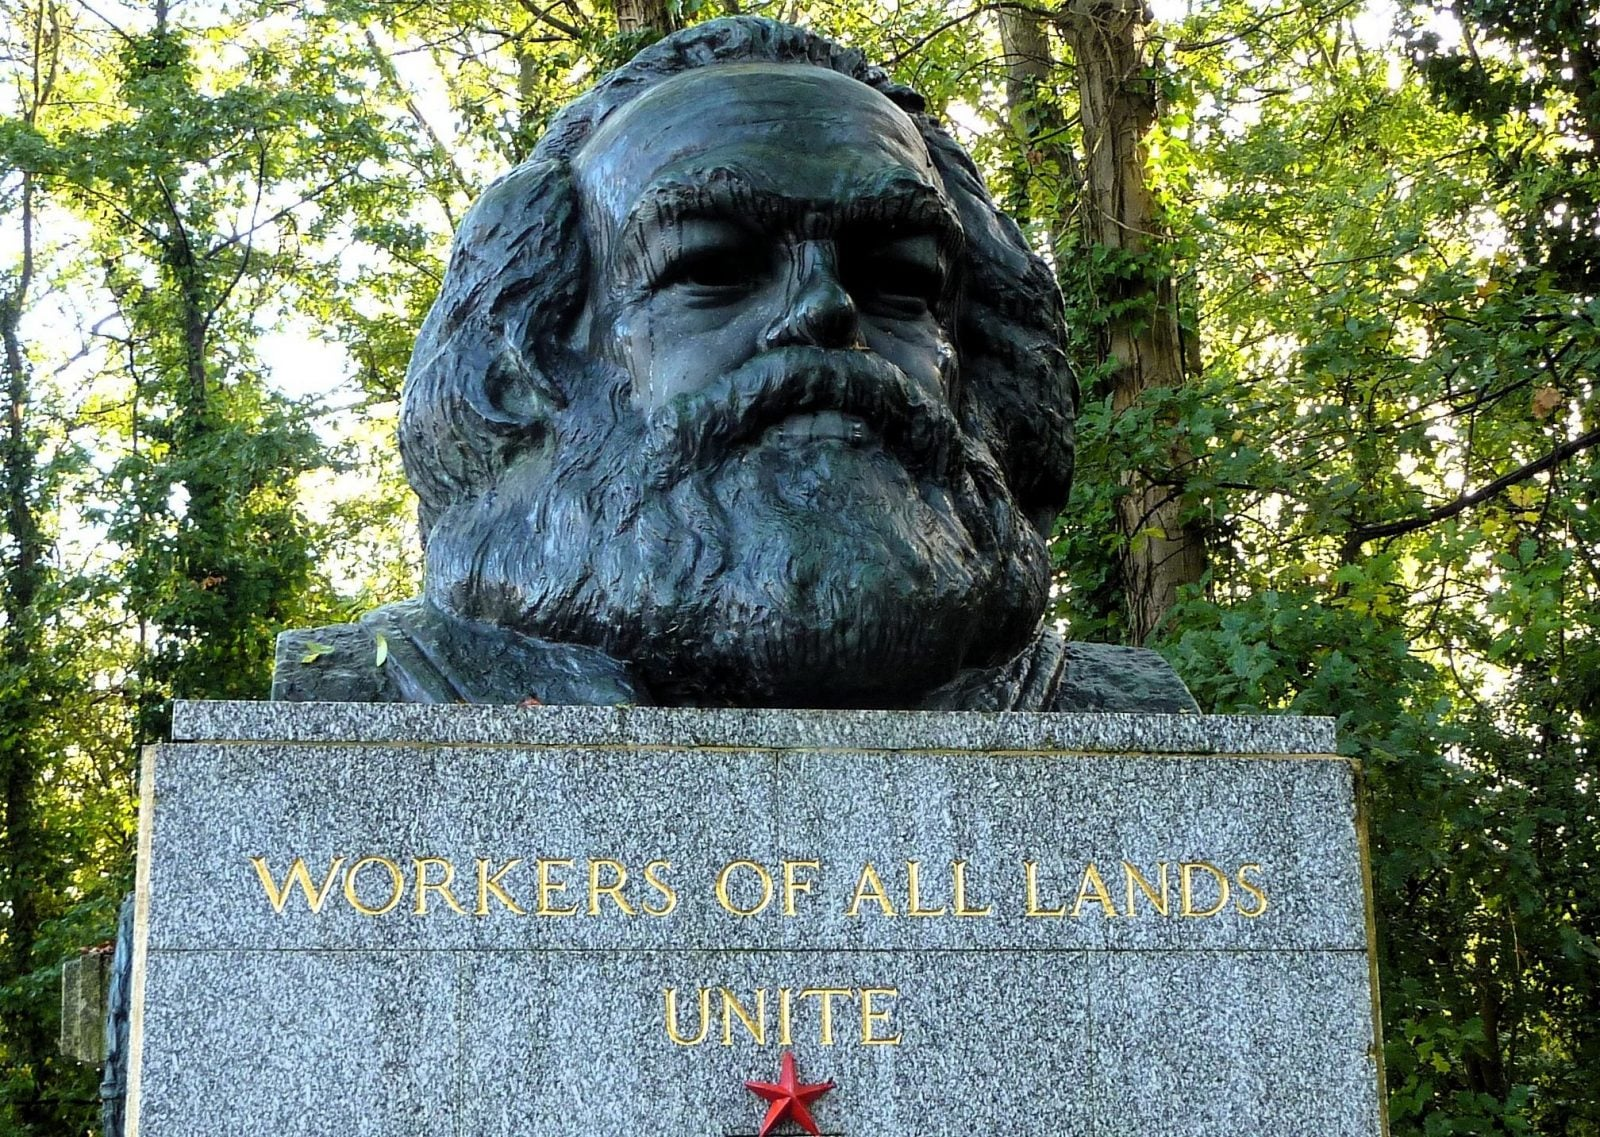 Workers of all lands unite Karl Marx